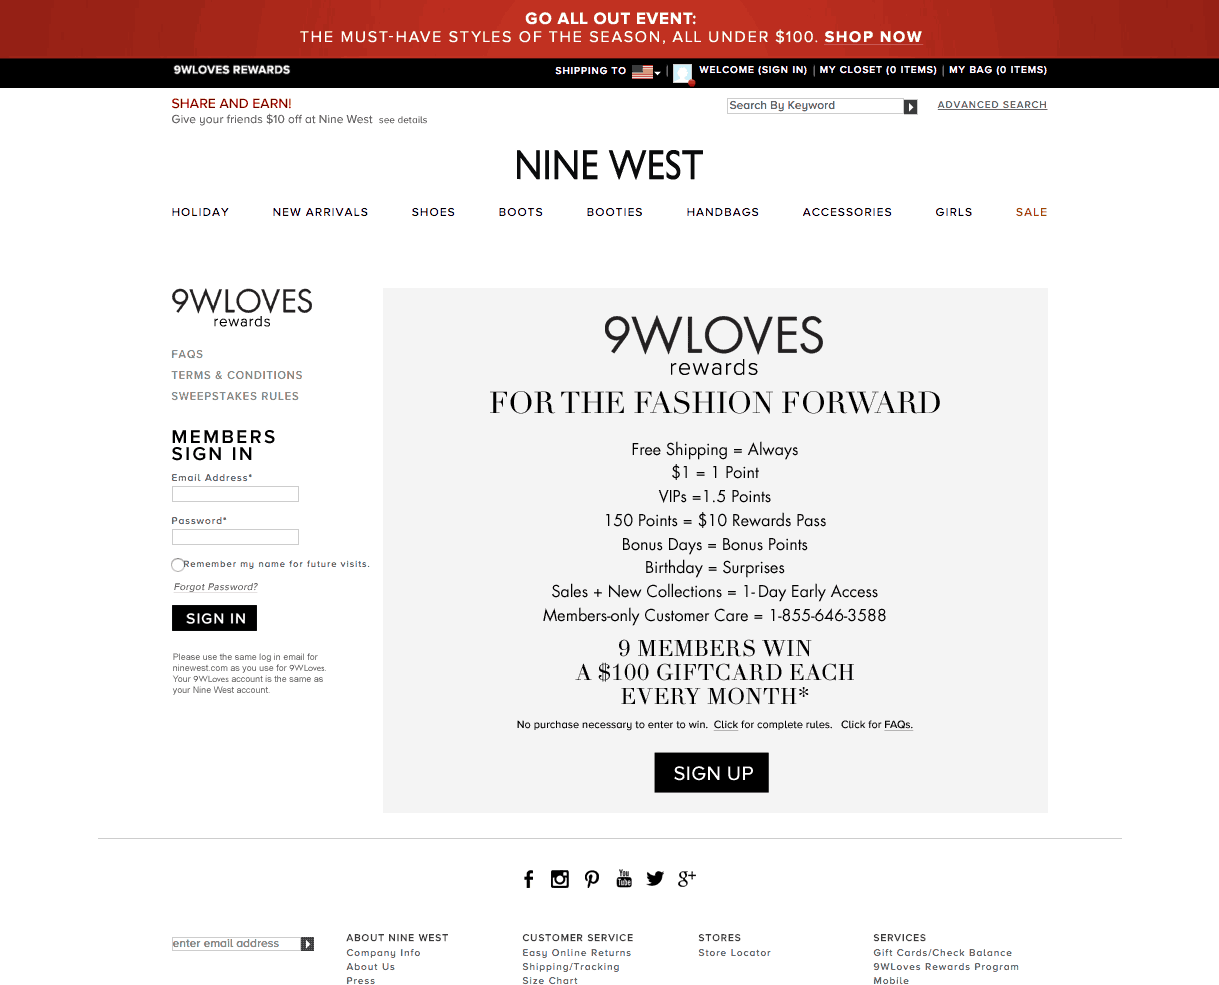 9WLOVES Is Nine West Points Based Rewards Program